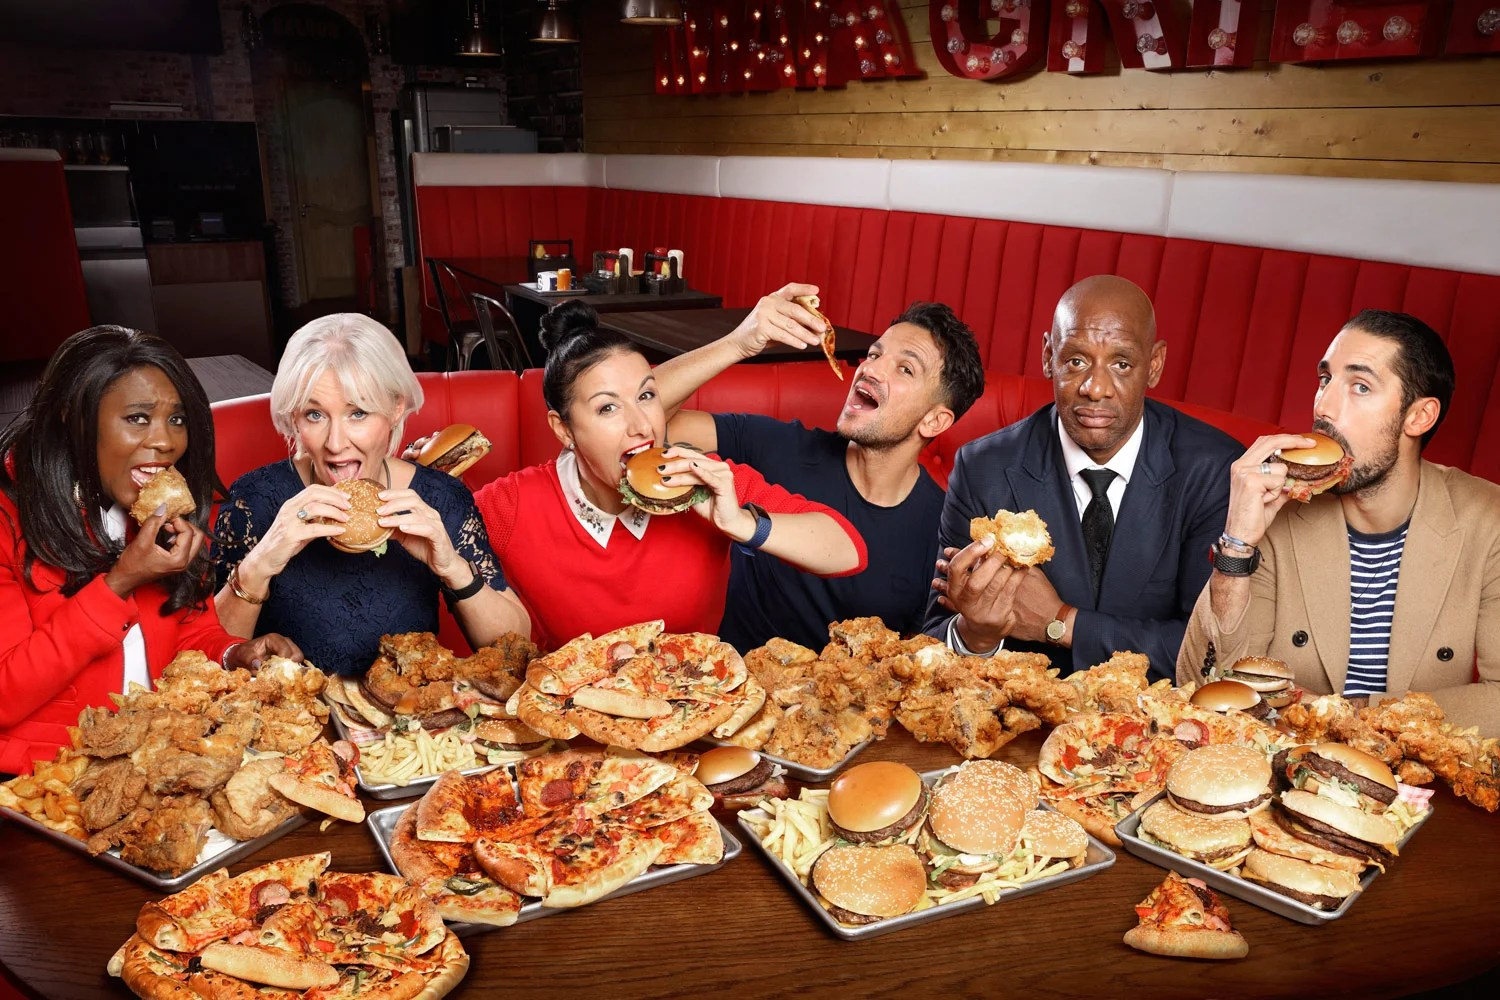 The Junk Food Experiment Celebrities Love A Pizza The